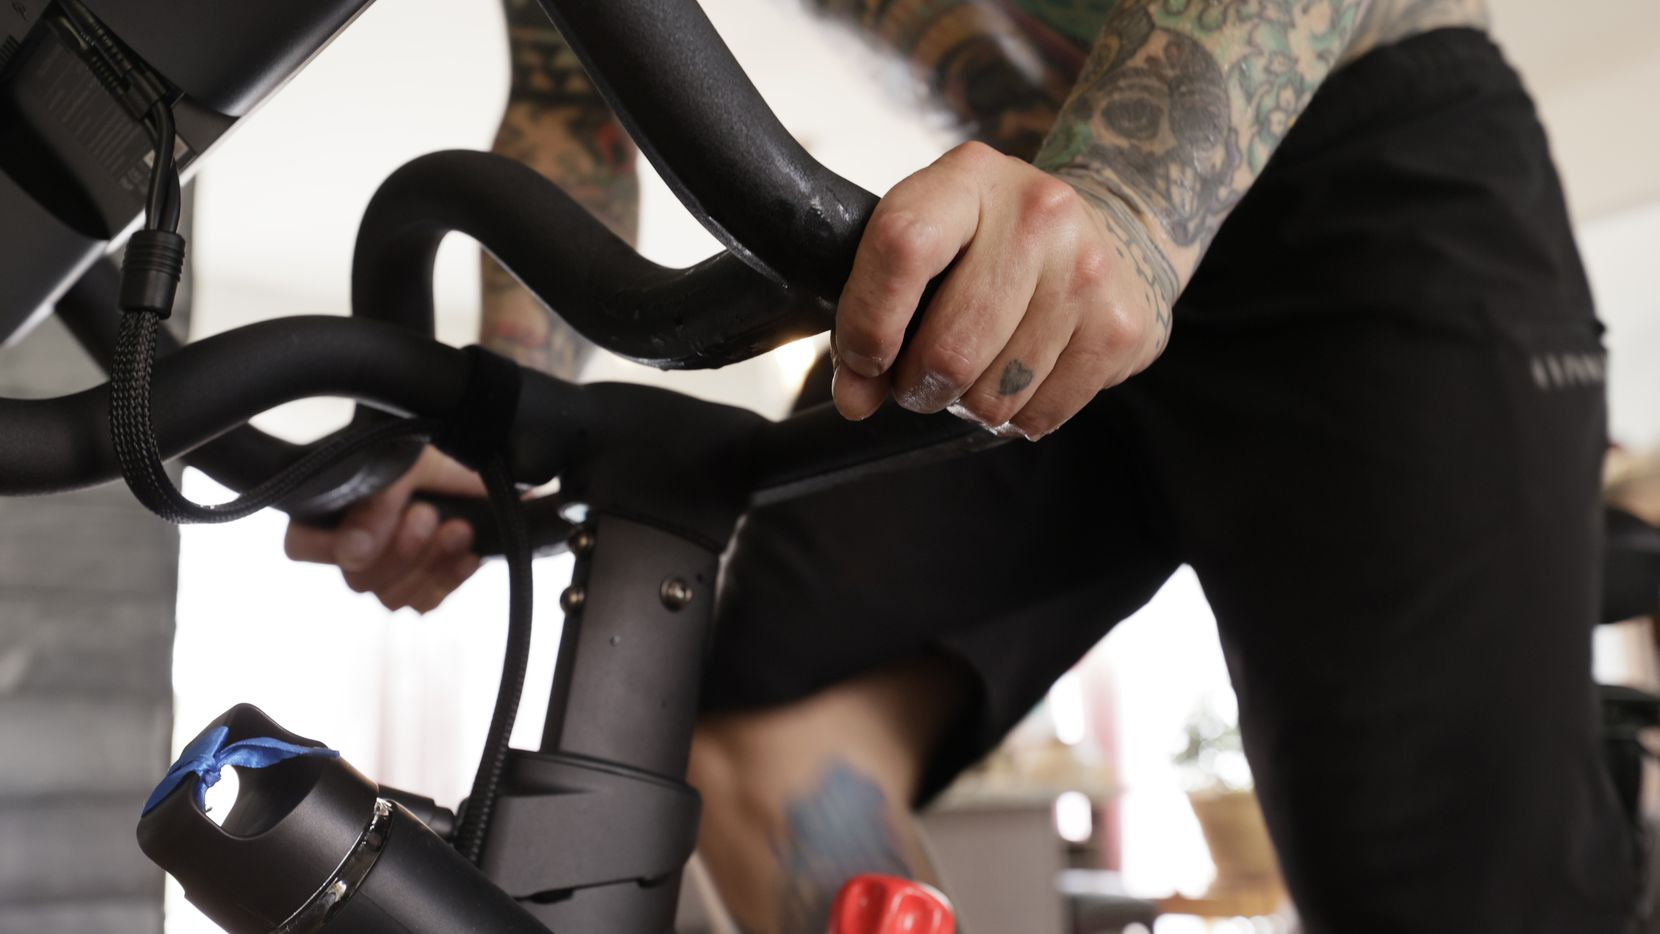 Brody Longo works out on his Peloton exercise bike in April in Brick, N.J.